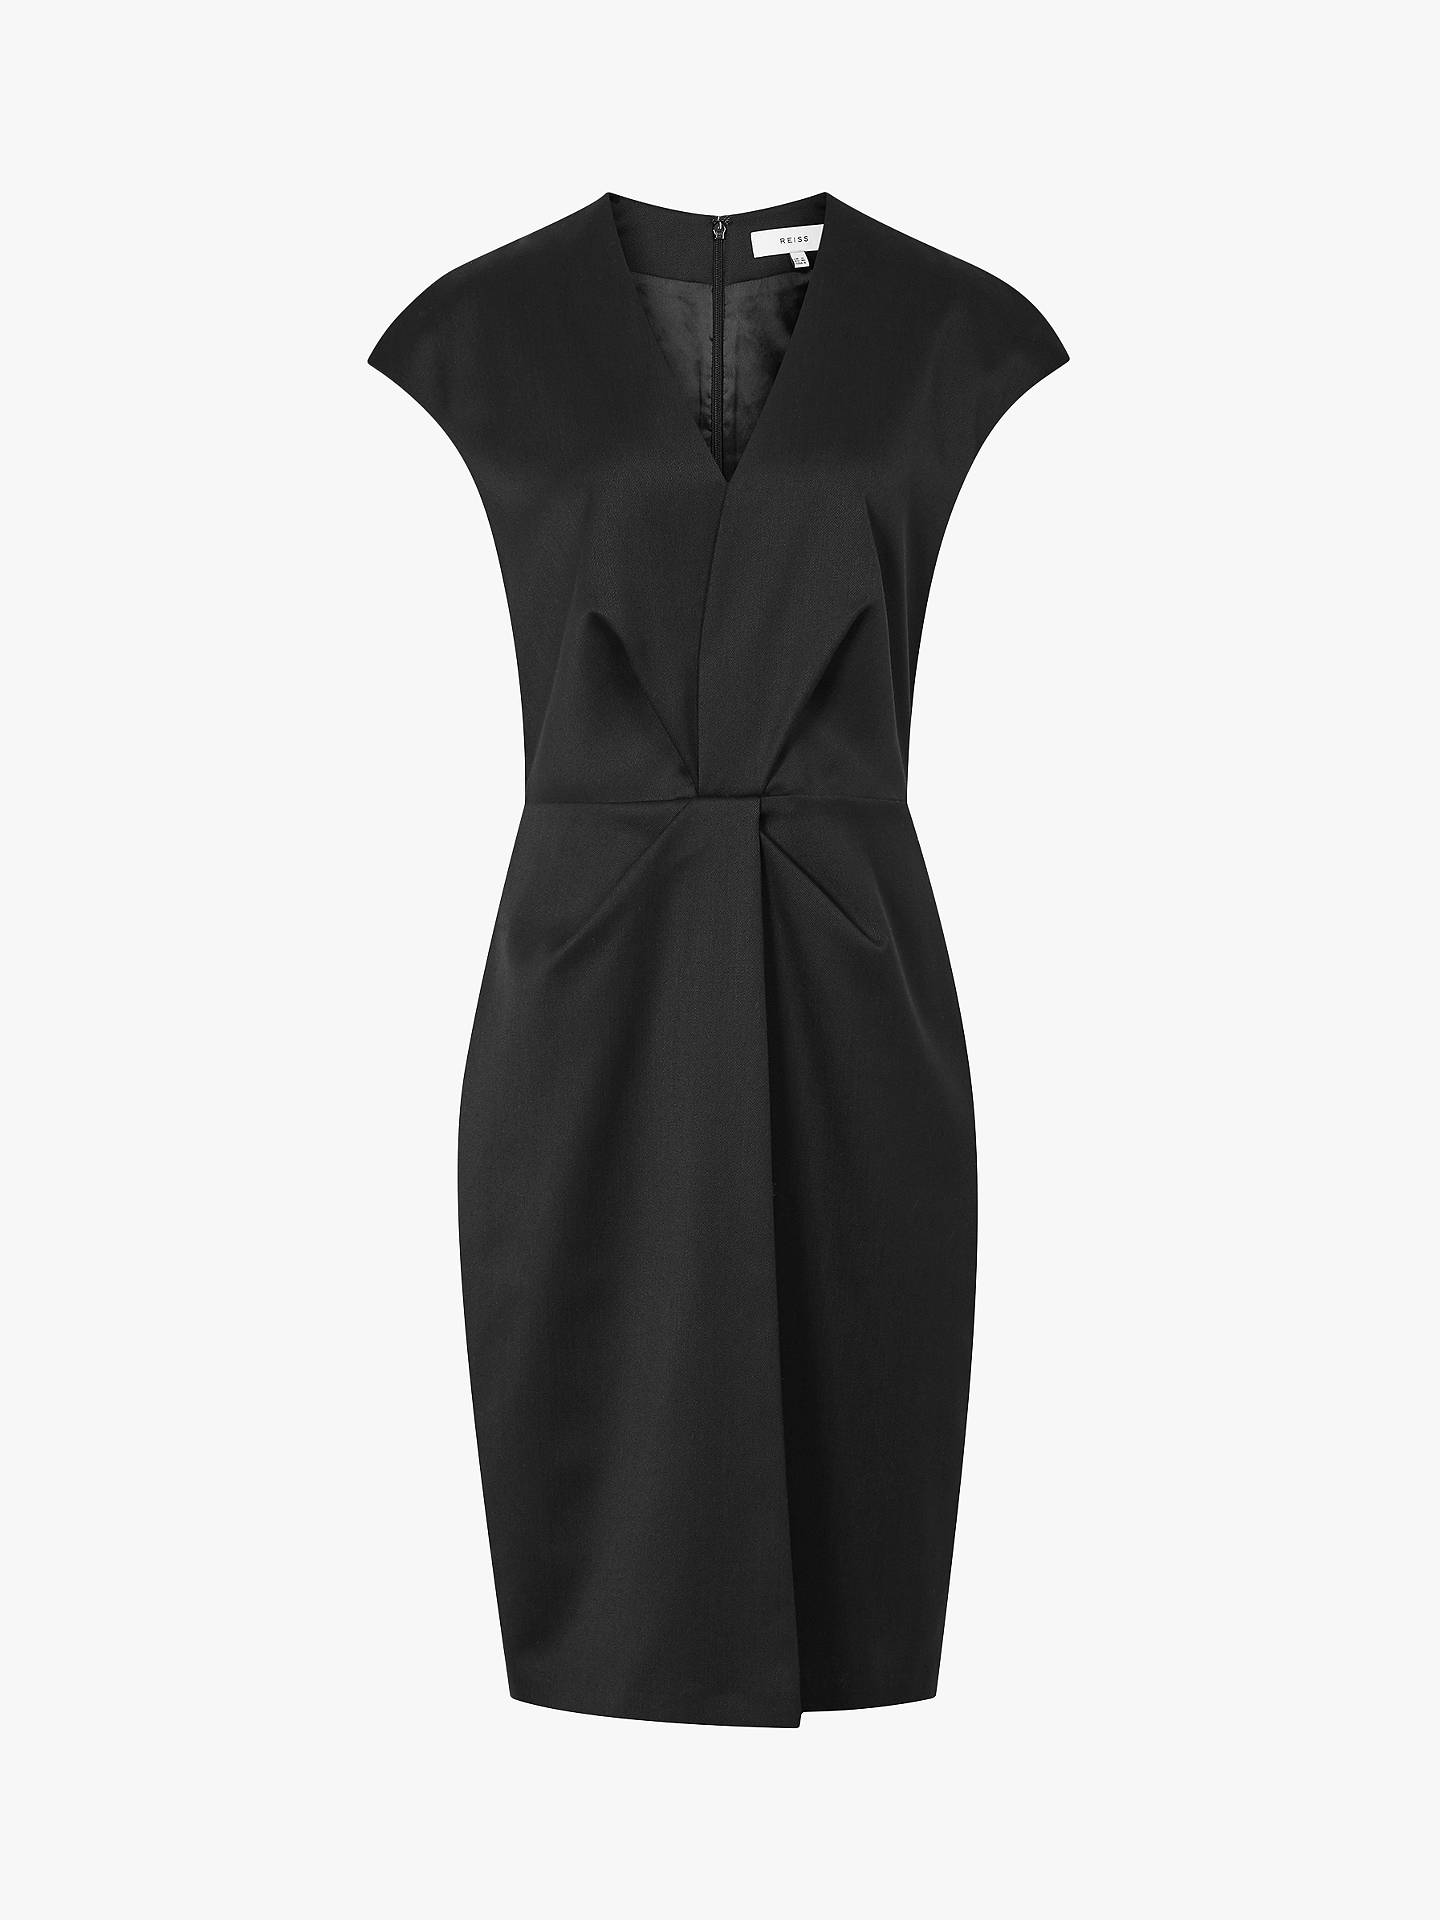 BuyReiss Harper Tailored Dress, Black, 6 Online at johnlewis.com